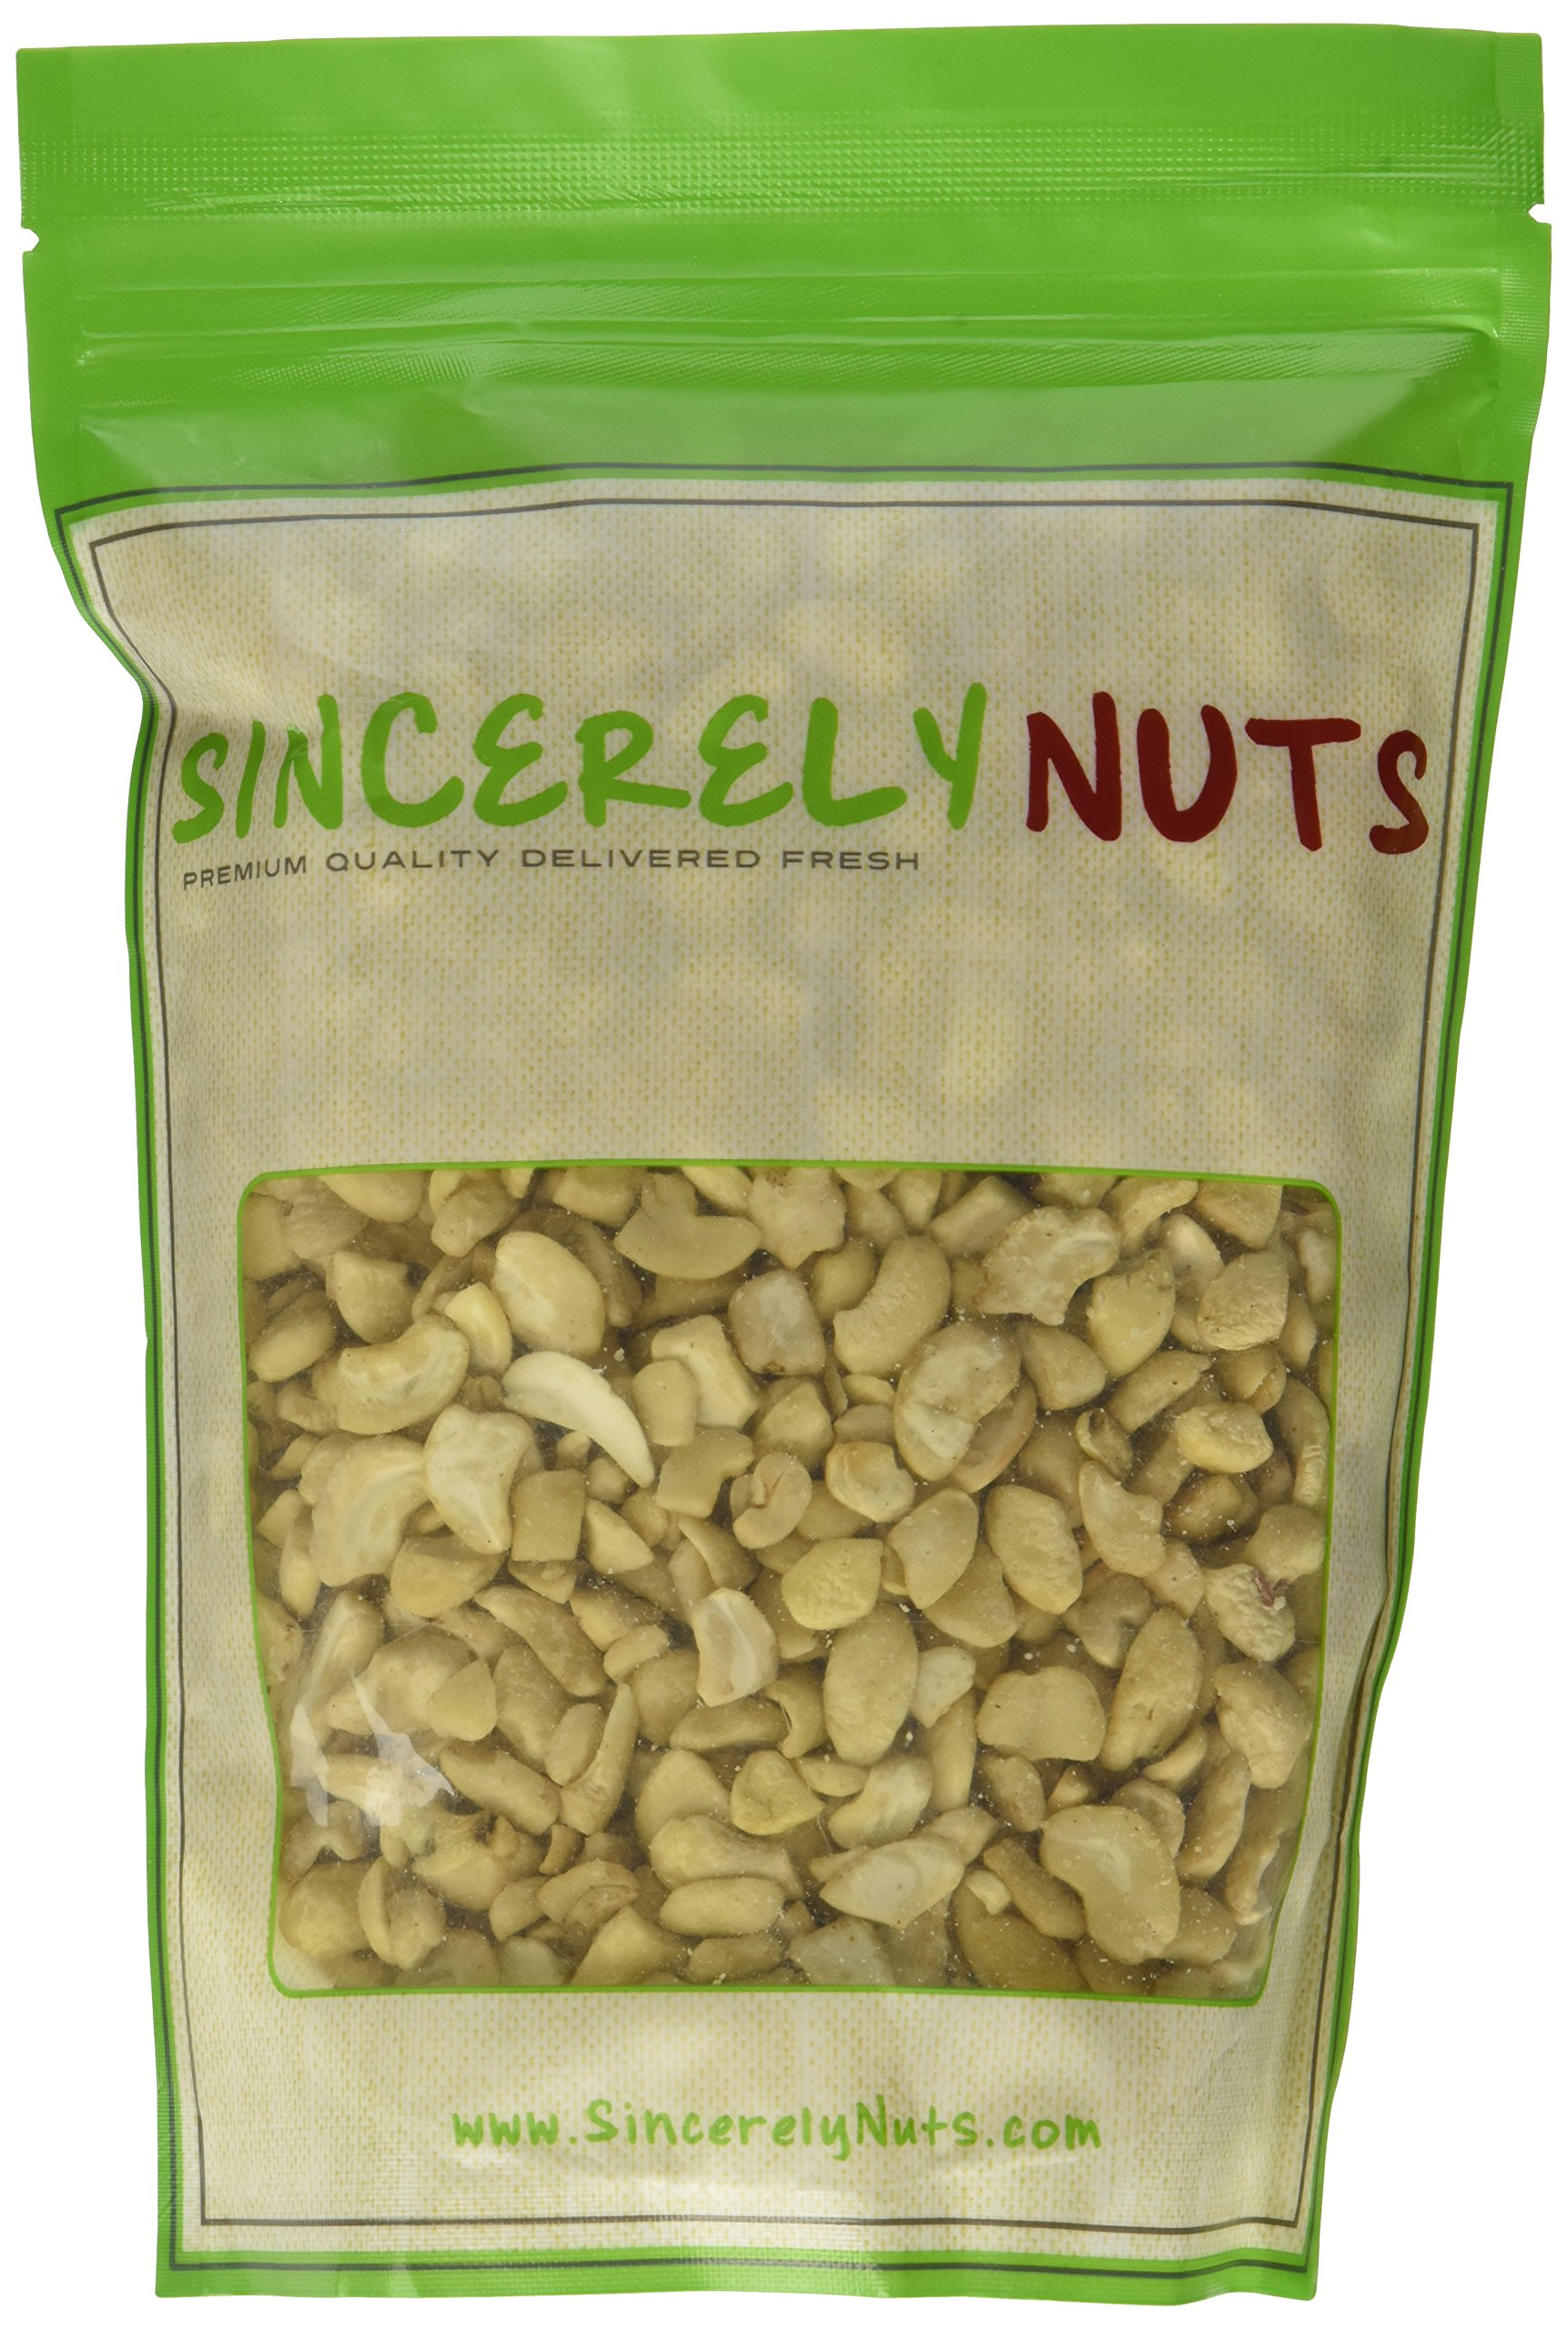 Sincerely Nuts Cashew Pieces (Raw) (1 LB)- Vegan, Keto, Paleo and Gluten-free food-Add to Your Favorite Recipes-Nutritious and Delicious On-the-Go Snack-High in Beneficial Vitamins and Minerals by Sincerely Nuts (Image #2)